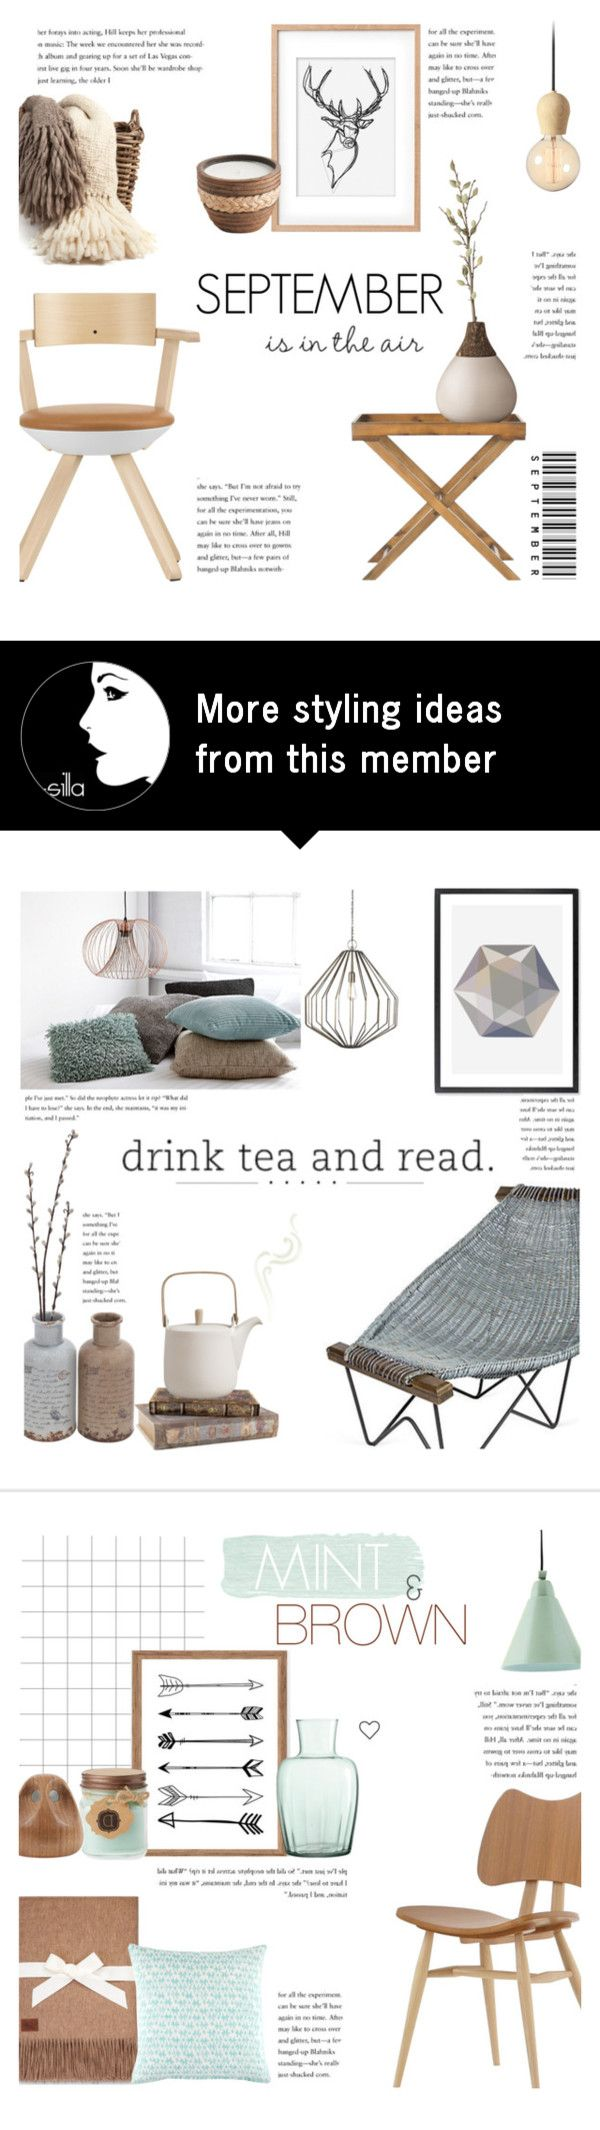 """""""September is in the Air"""" by c-silla on Polyvore featuring interior, interiors, interior design, home, home decor, interior decorating, CB2, New Rustics, Safavieh and Bloomingville"""